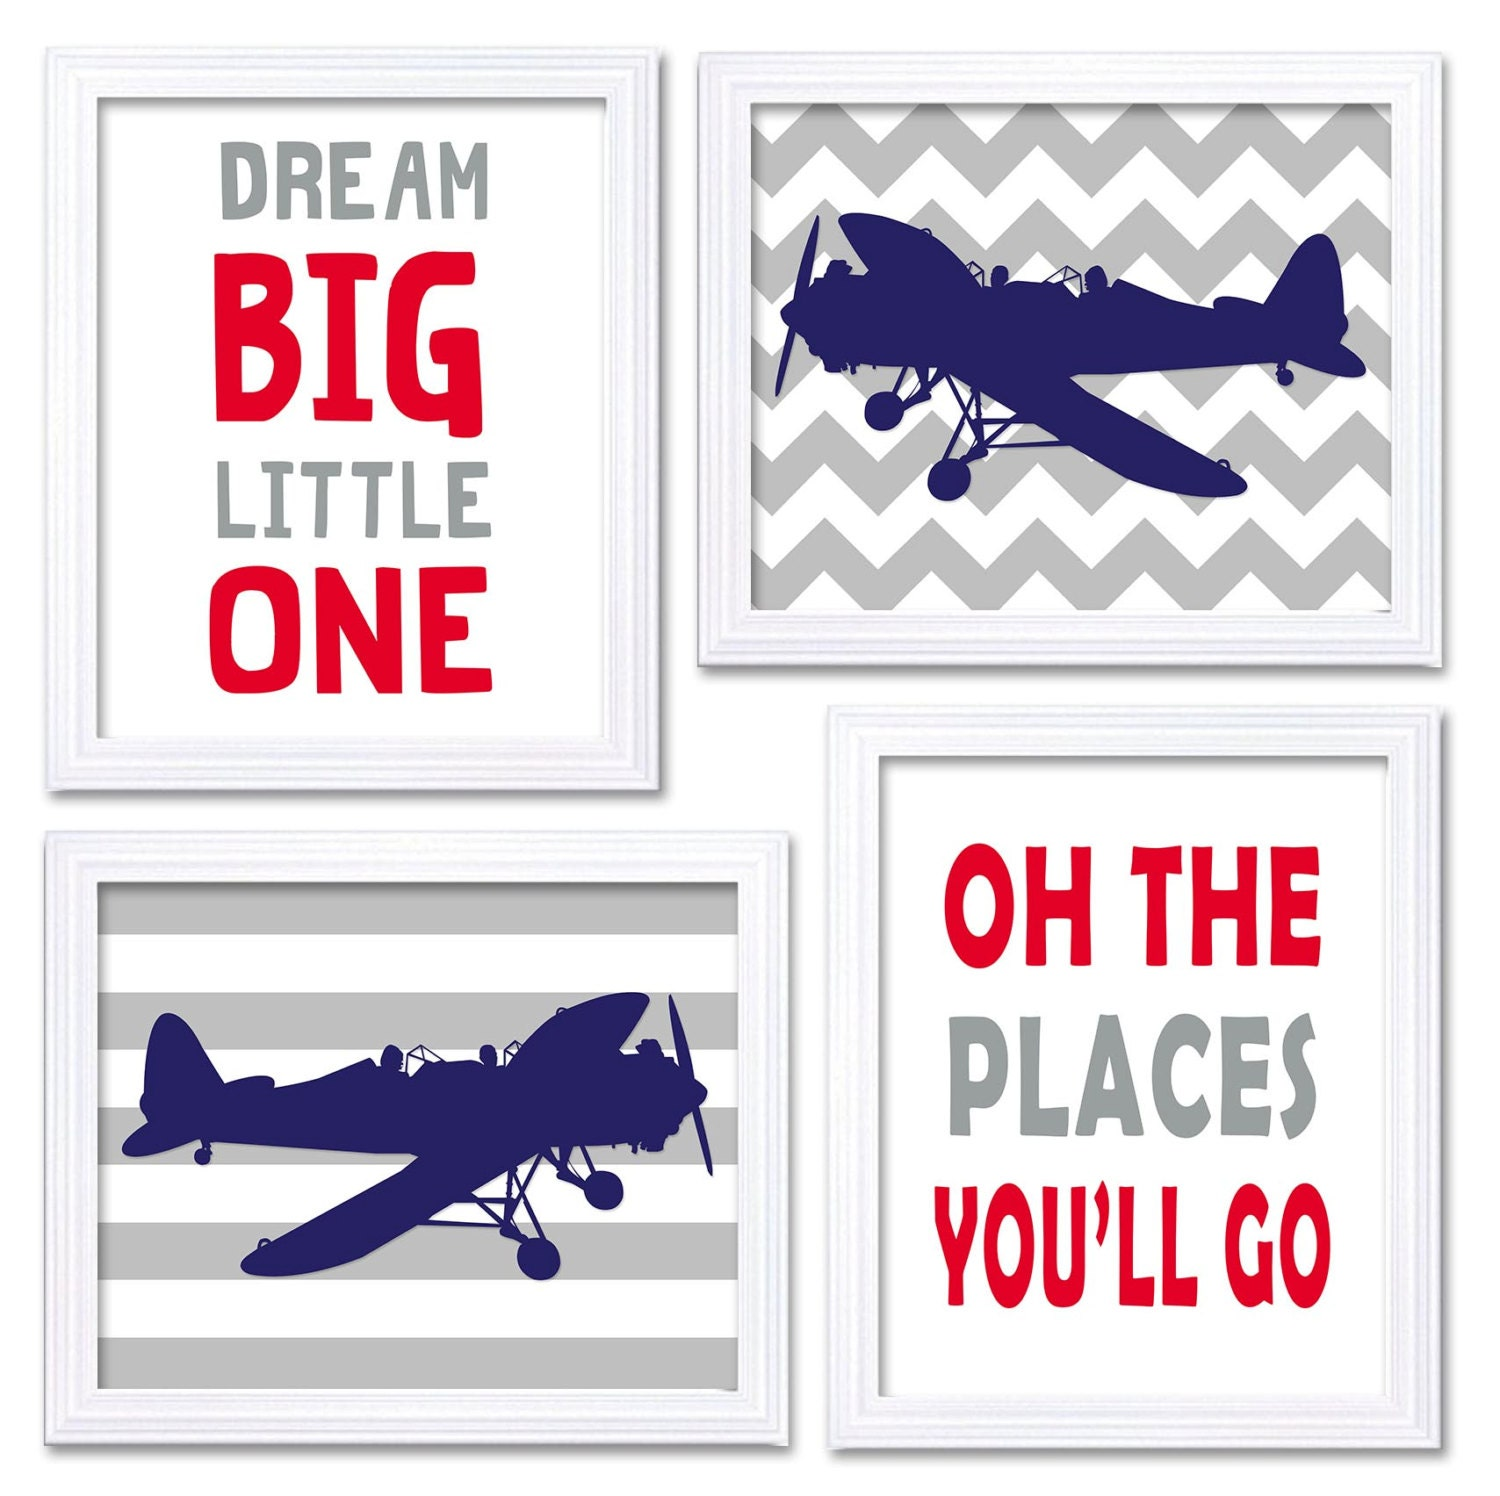 Airplane Nursery Art Red Navy Blue Grey Nursery Print Set of 4 Transportation Dream Big Little One O